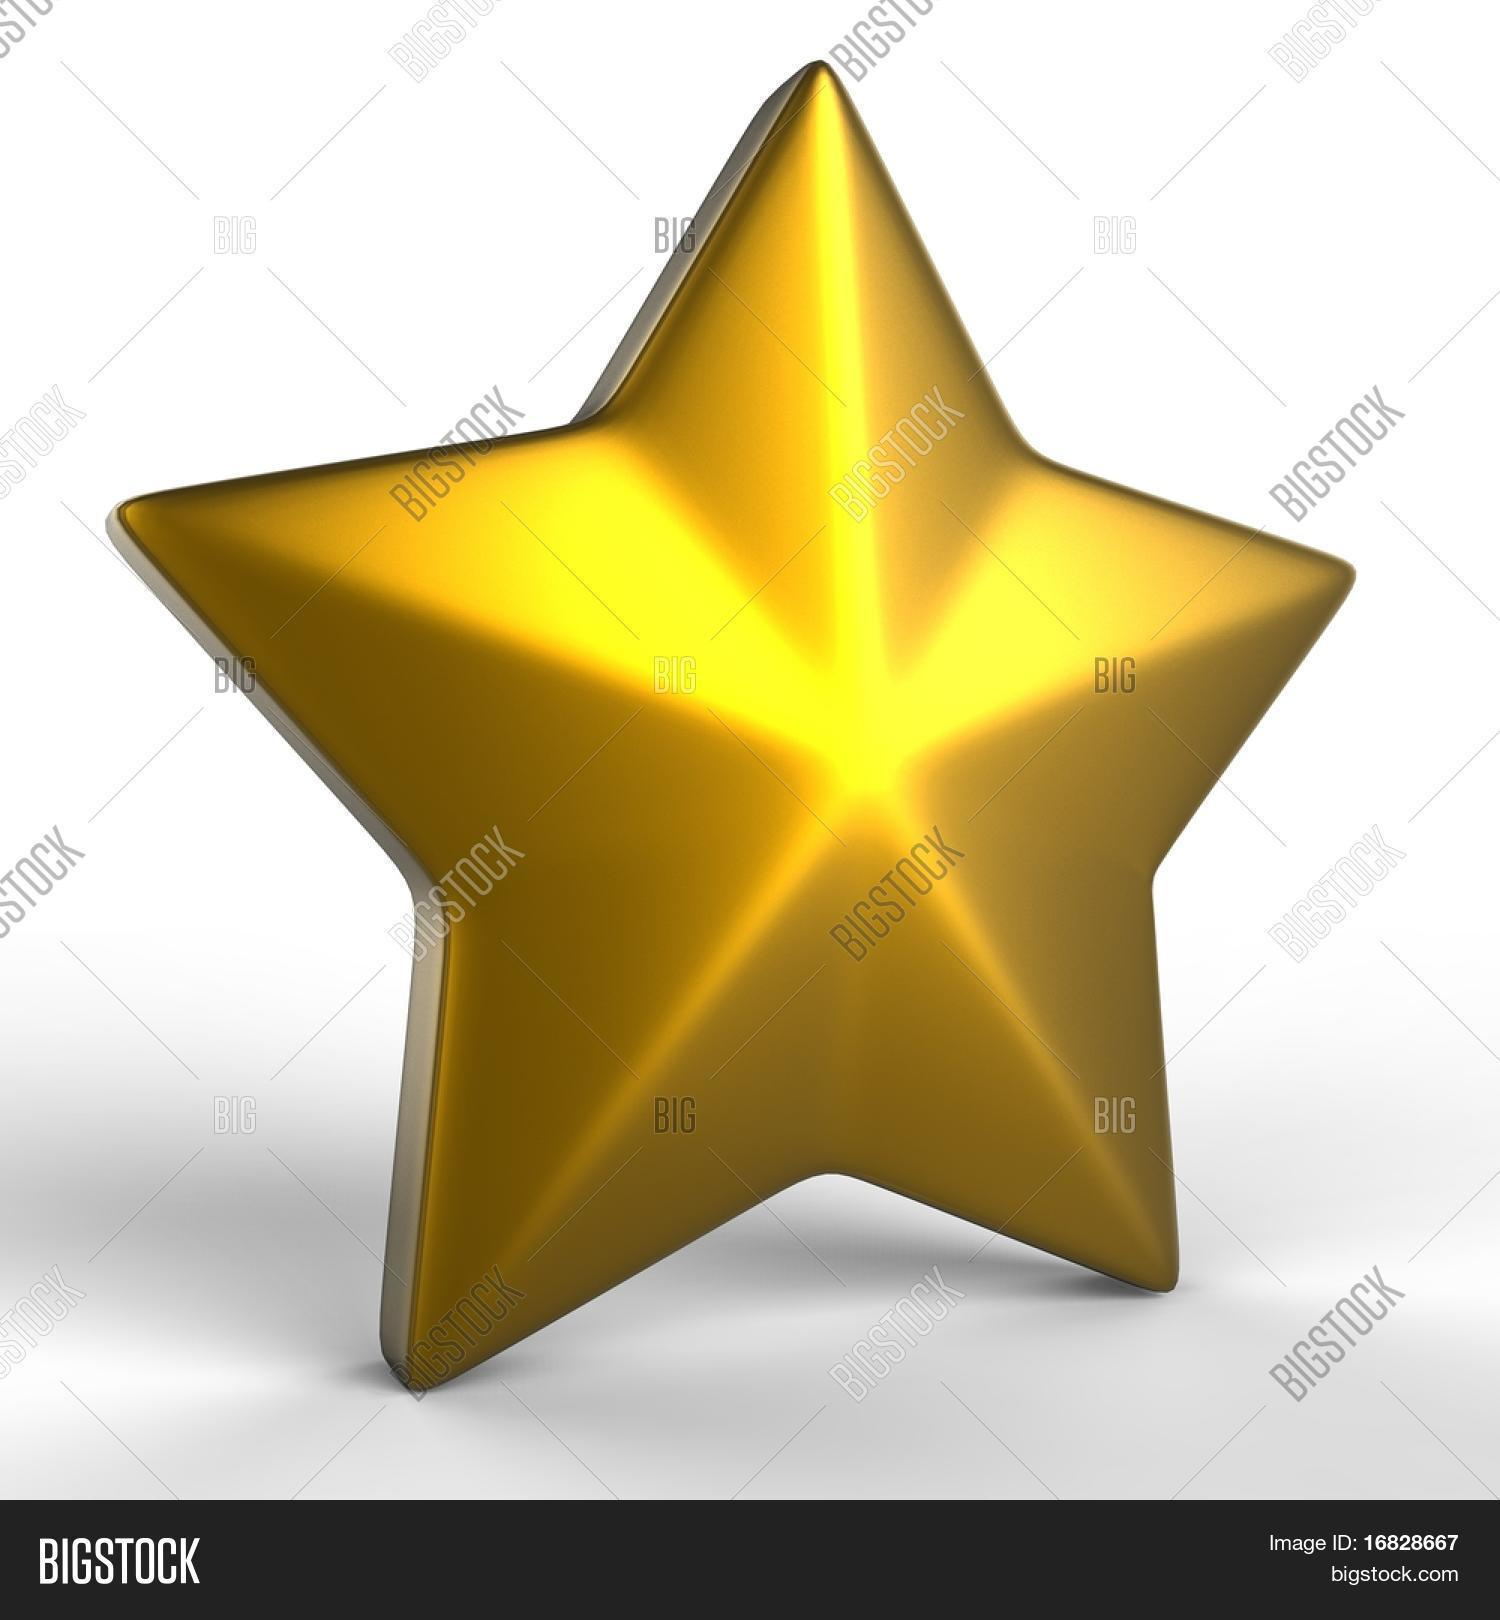 gold star 3d render image photo free trial bigstock